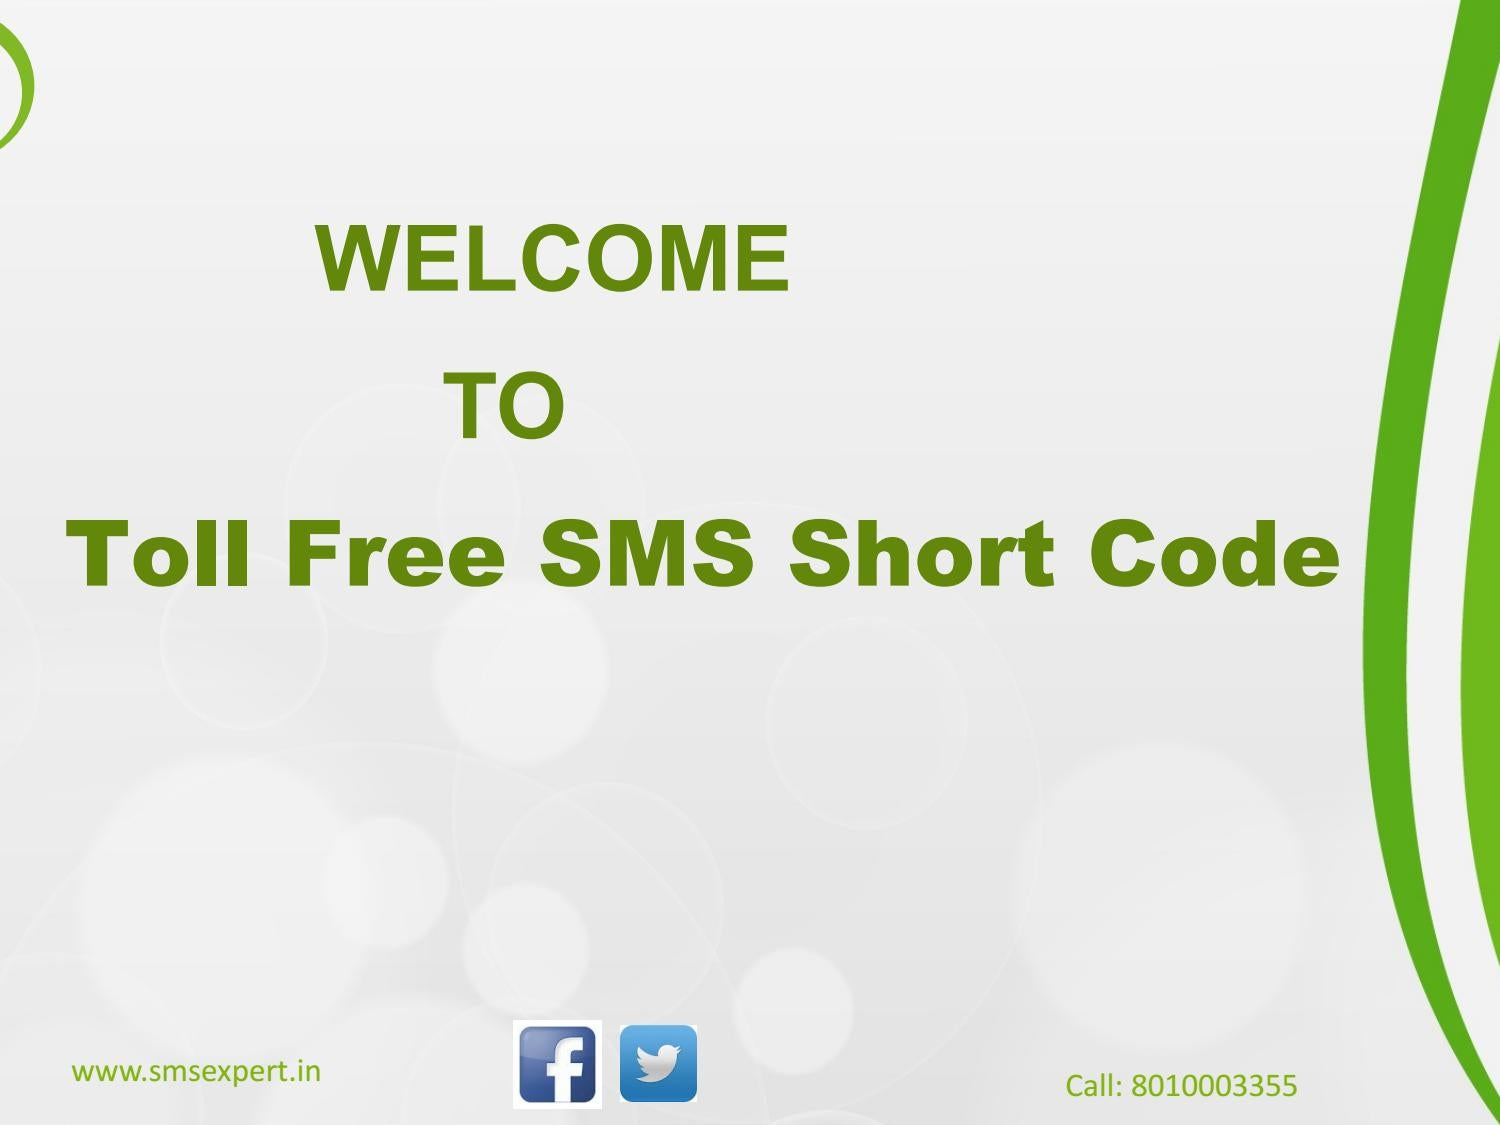 Toll free sms short code by anubhavgupta - issuu